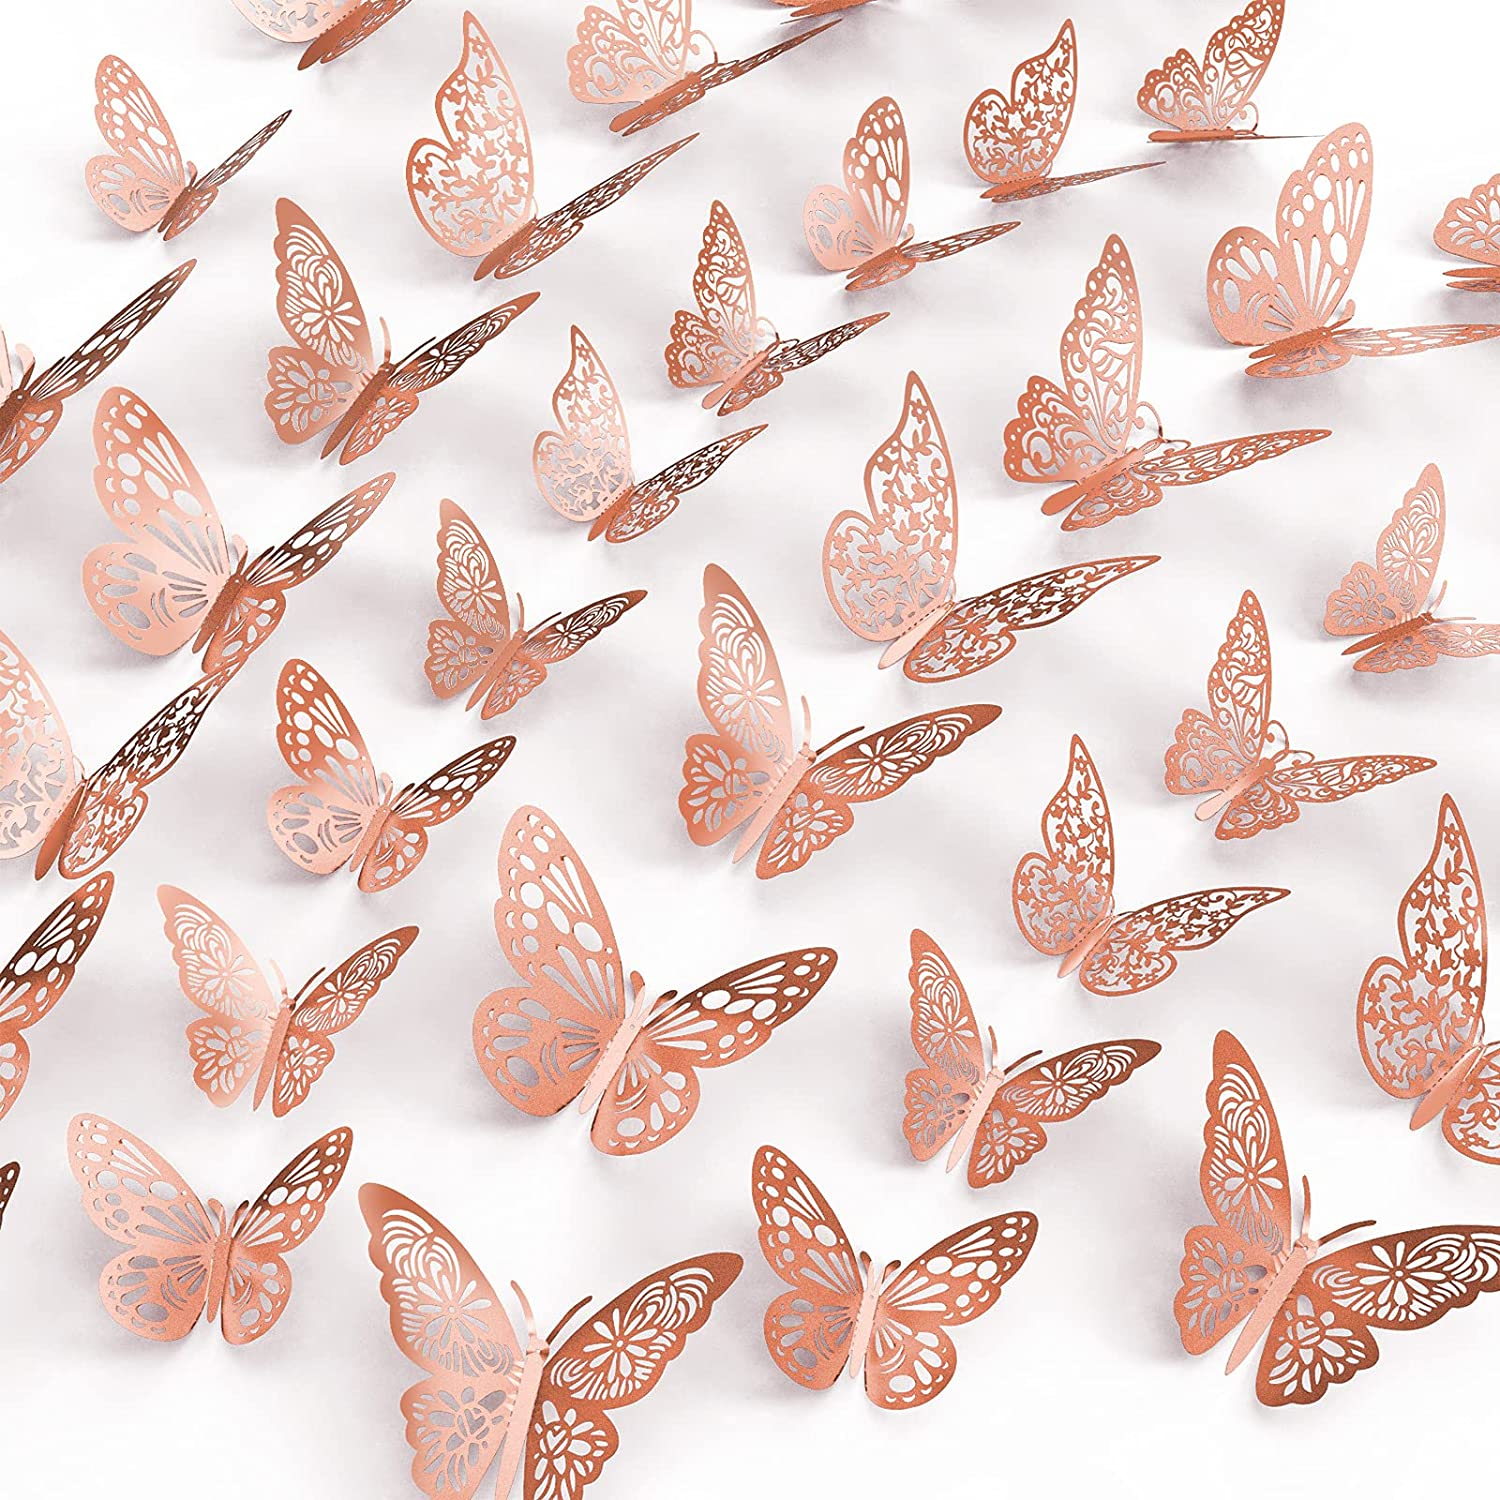 48Pcs Butterfly Wall Stickers, Basima 3D Butterflies Decor 4 Styles 3 Sizes, Removable Murals Metallic Wall Decals for Kids & Baby Bedroom Home Office Wedding Party, DIY Gift (Rose Gold)